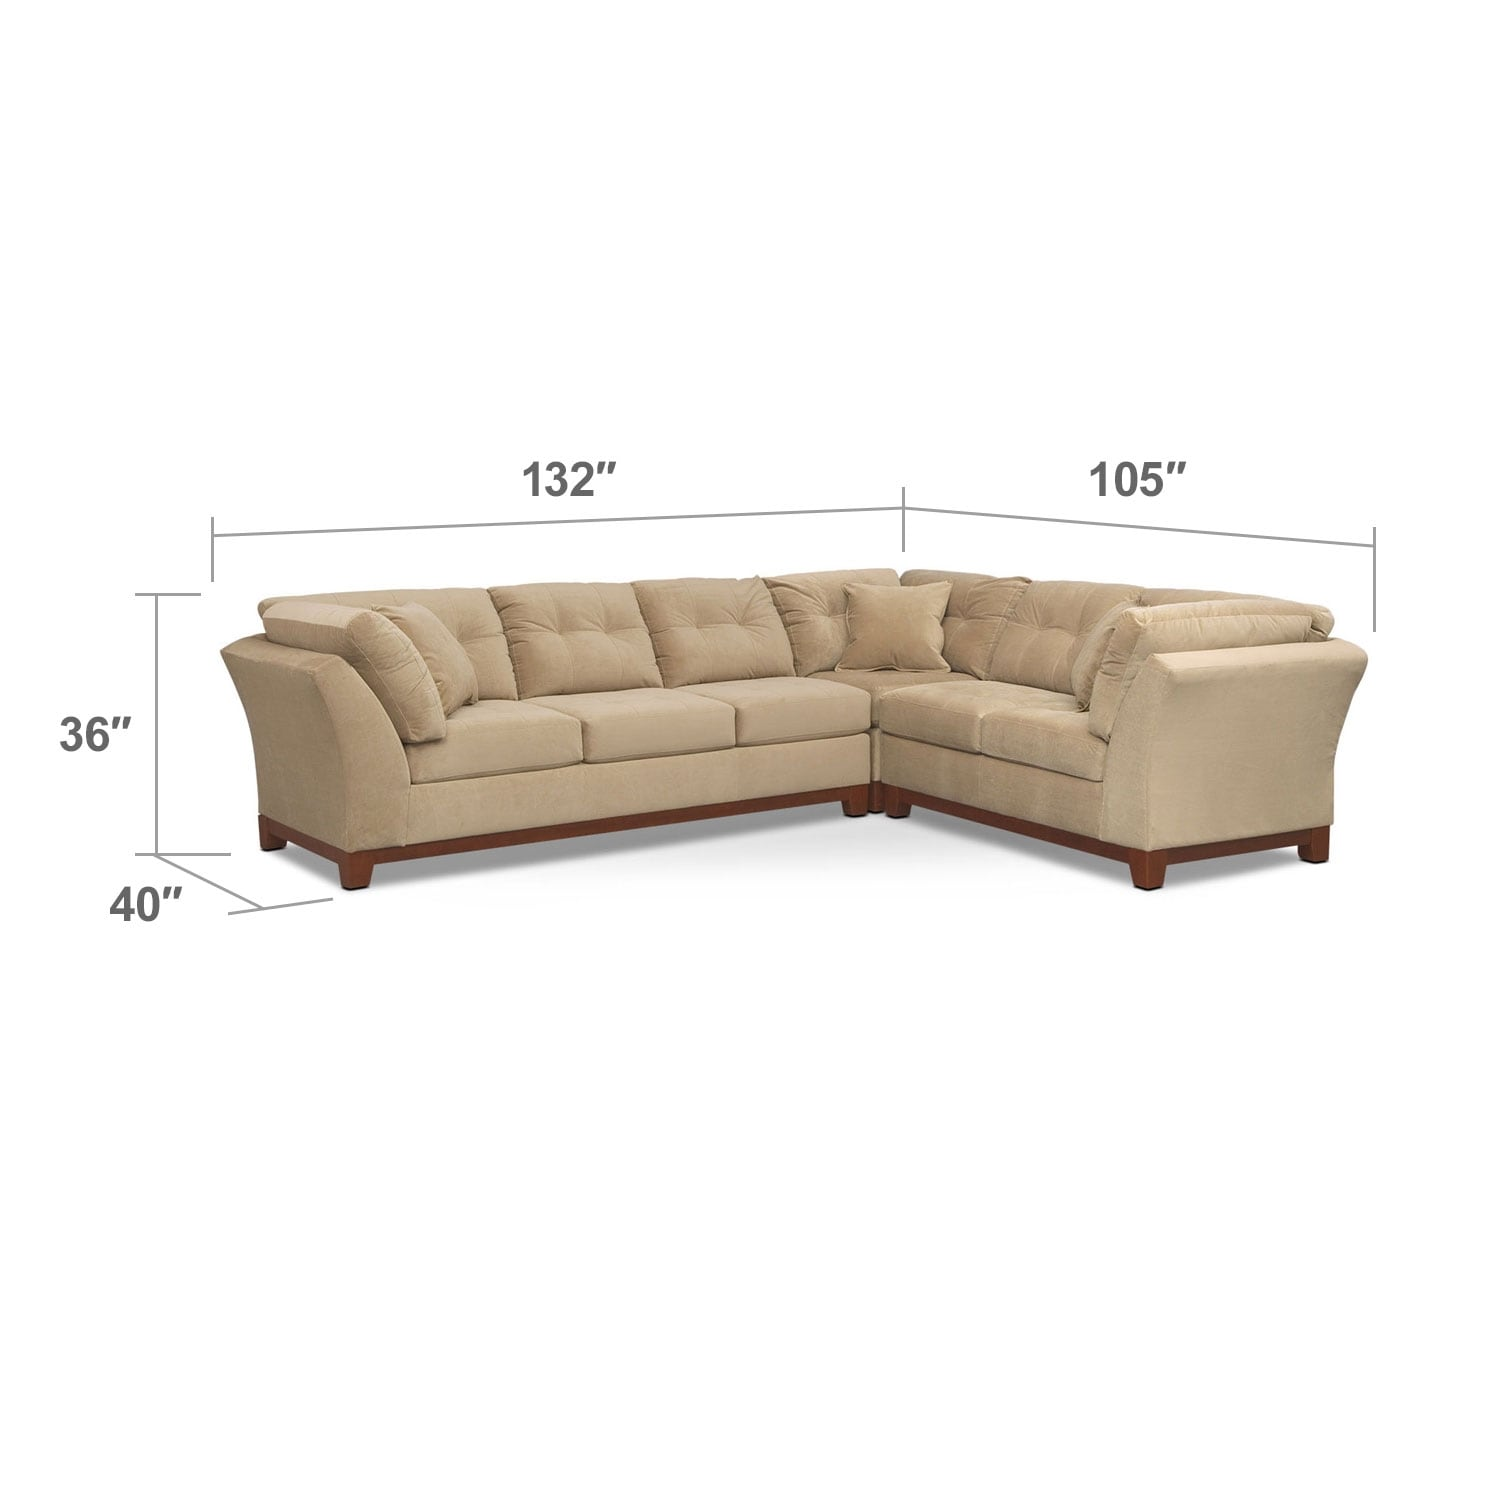 Living Room Furniture - Solace 3-Piece Left-Facing Sofa Sectional - Cocoa